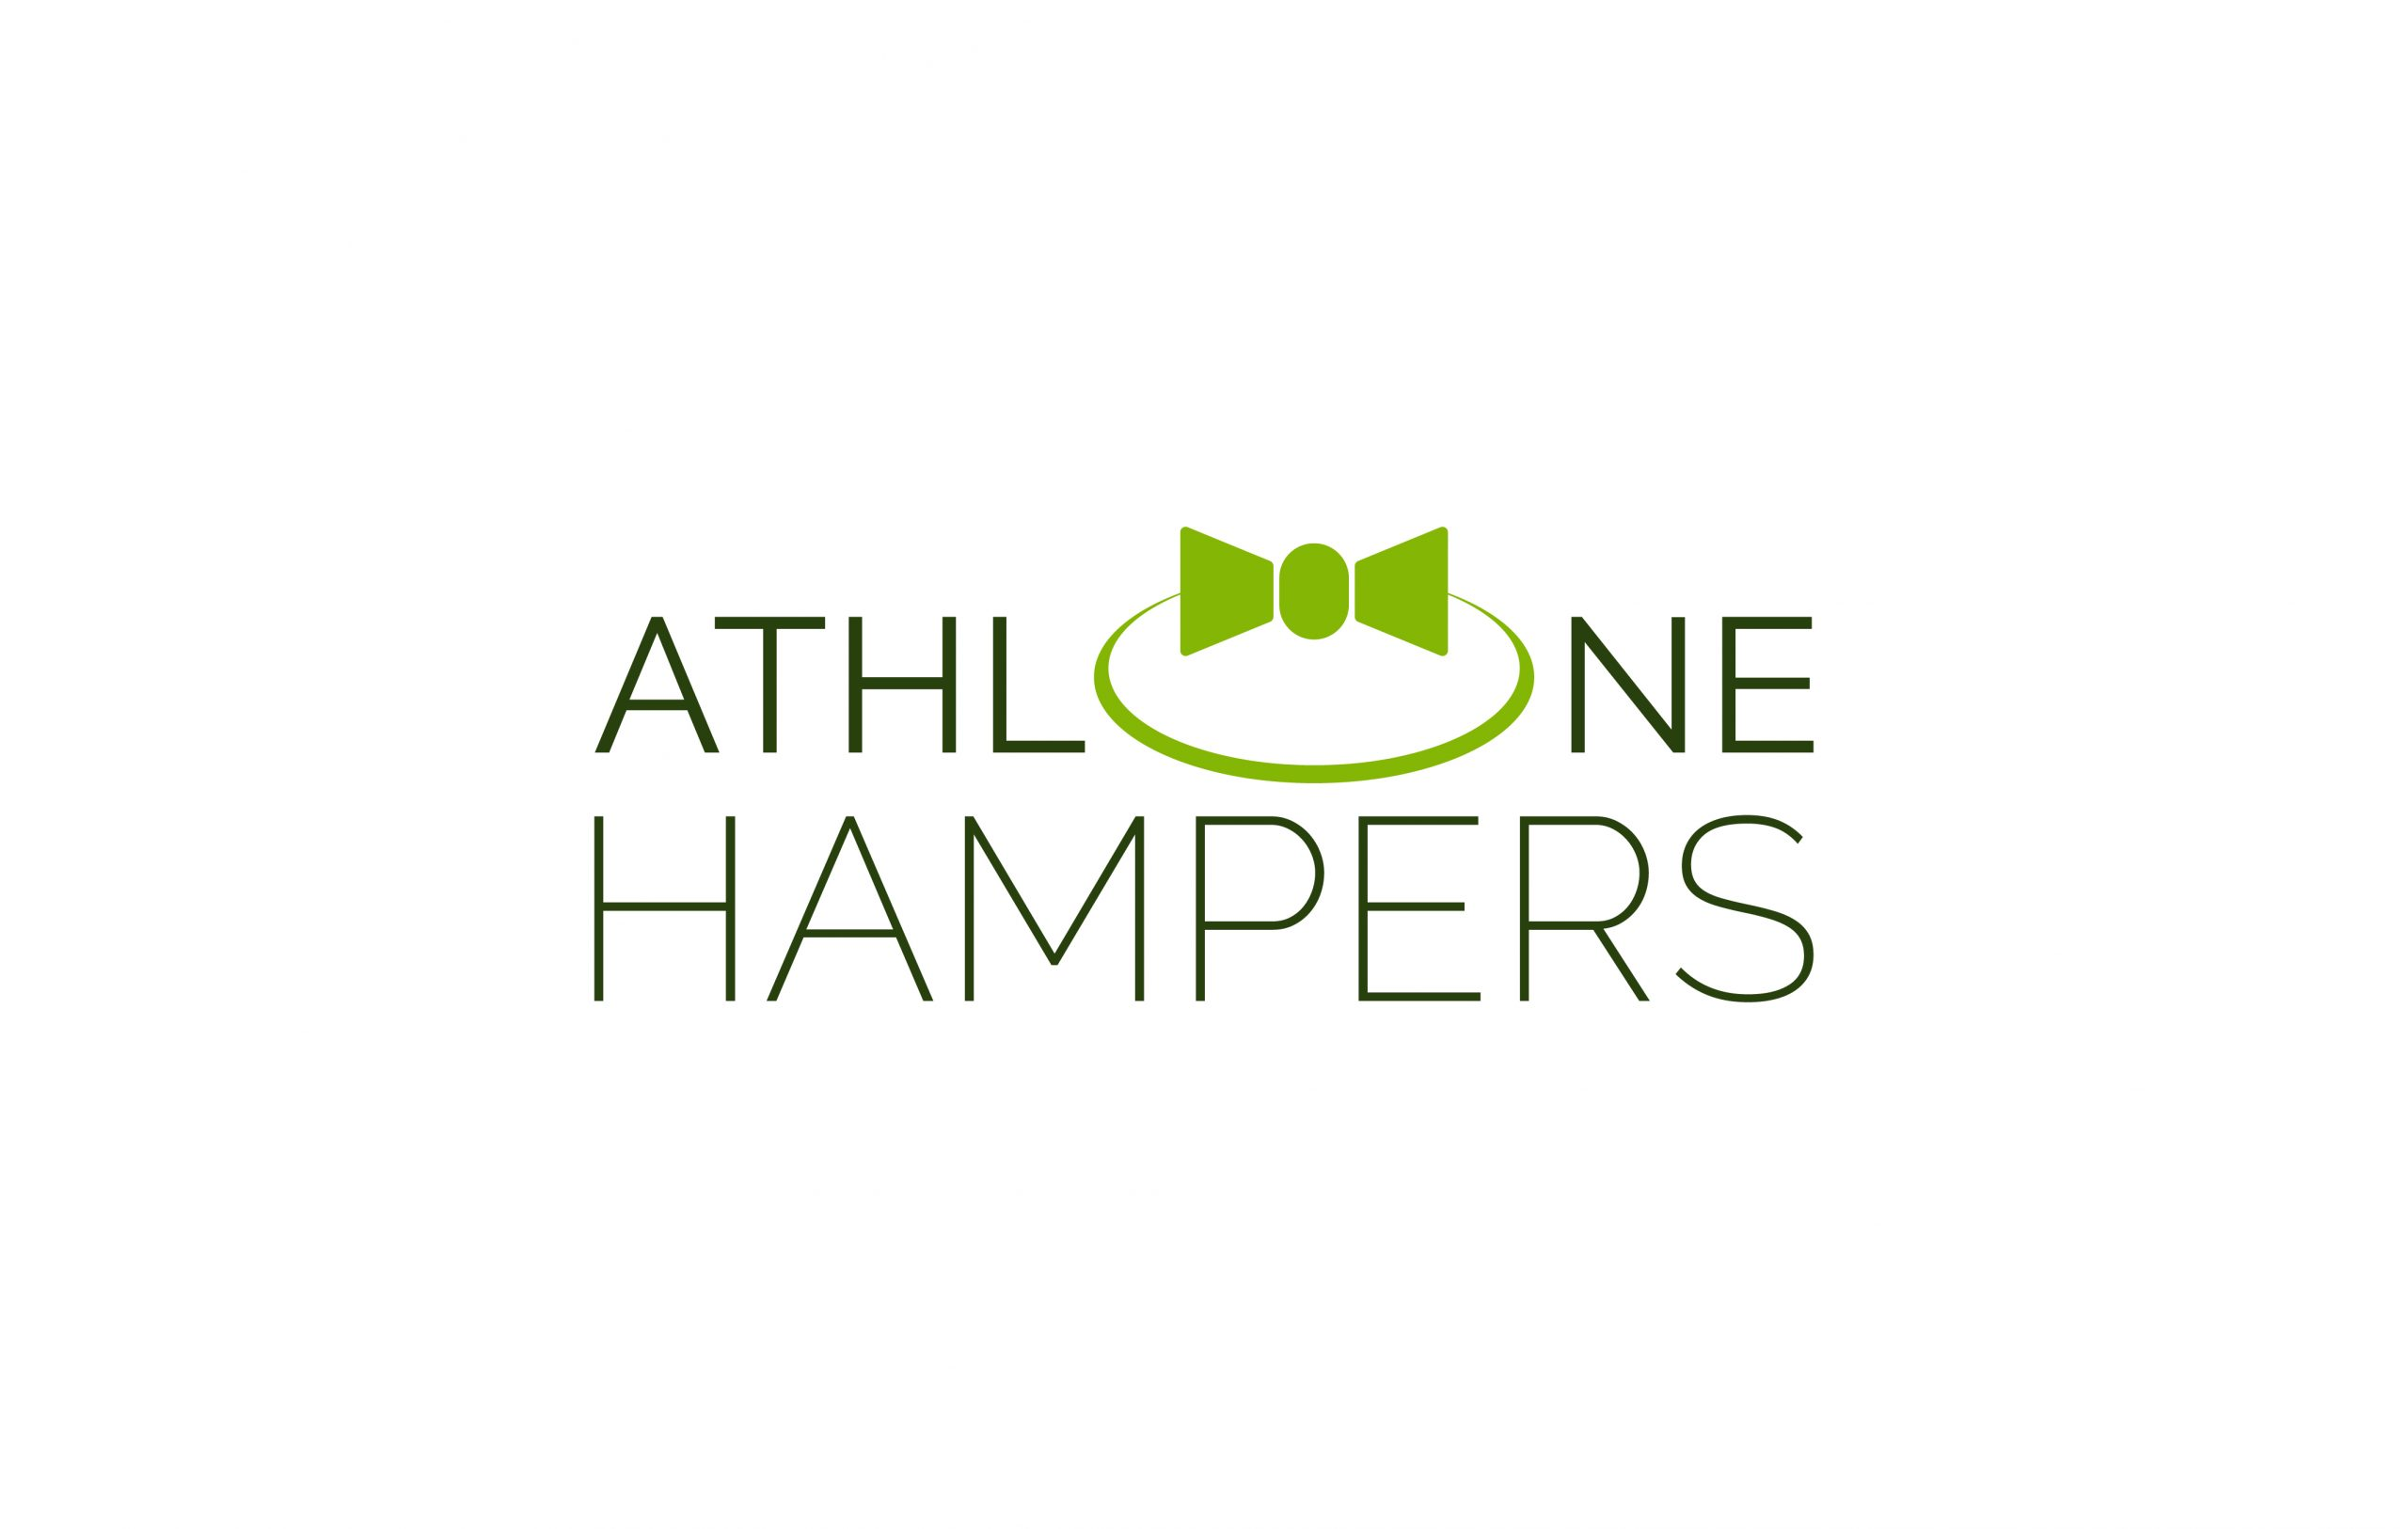 Athlone Hampers